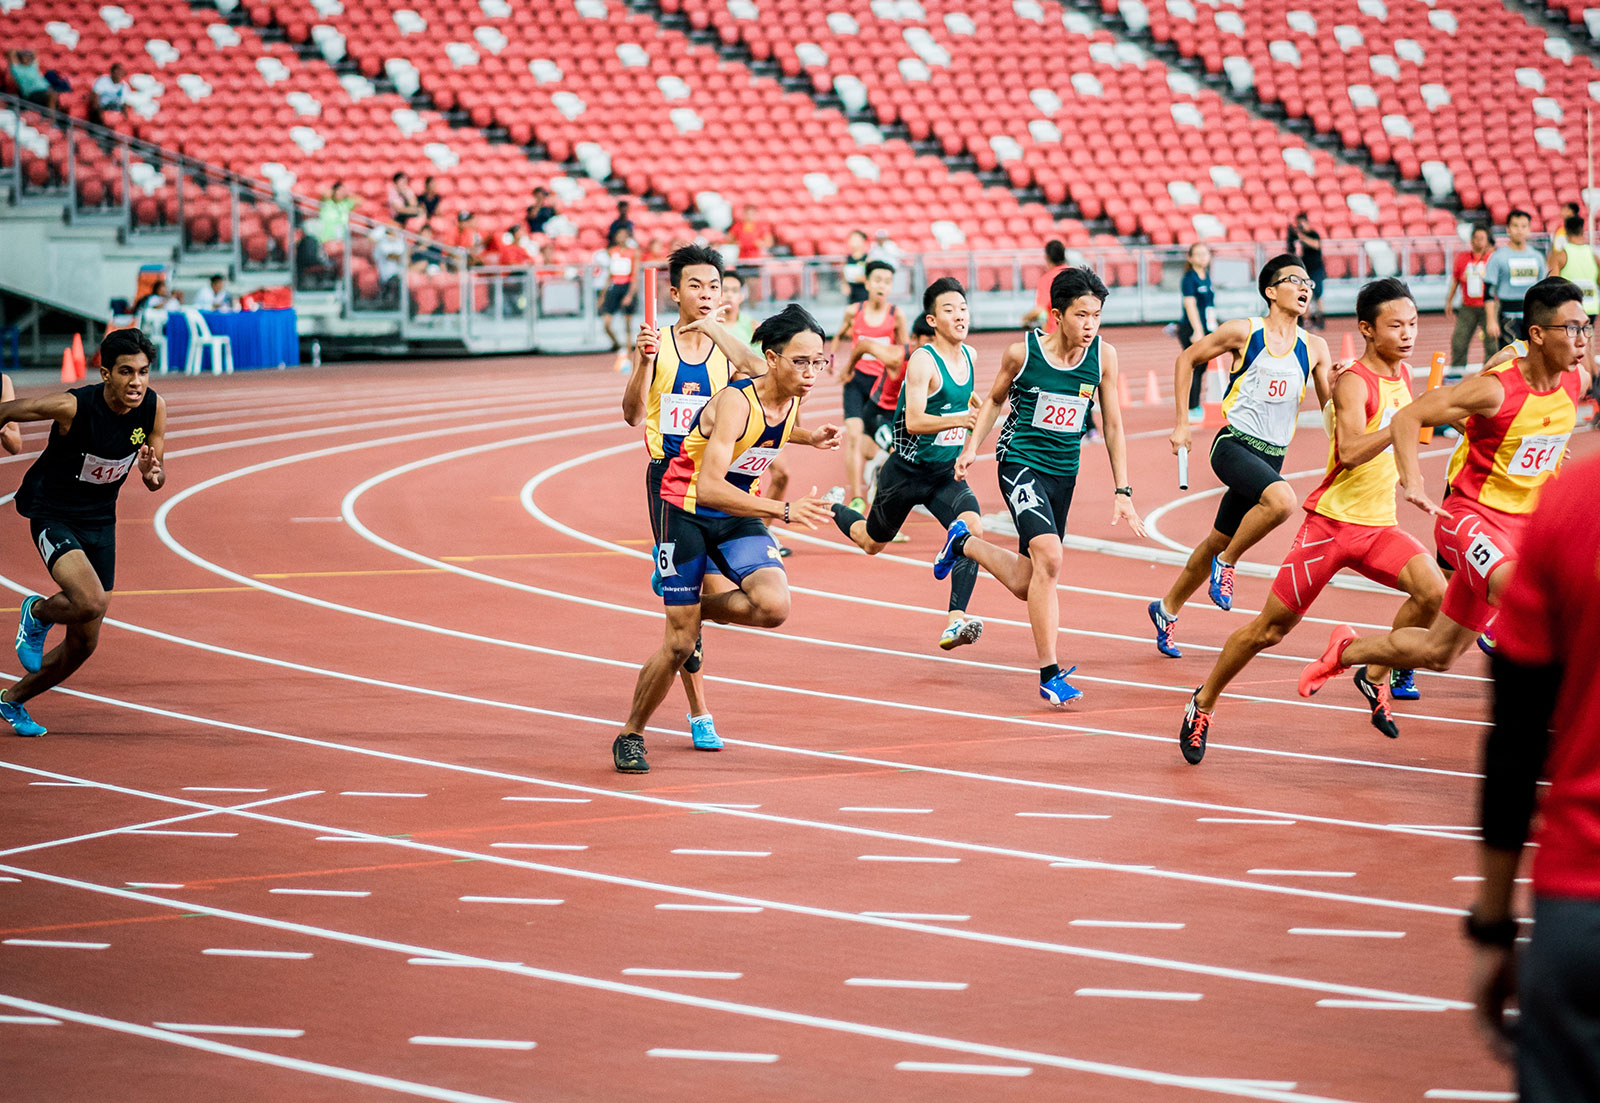 Athletes running on a race track.